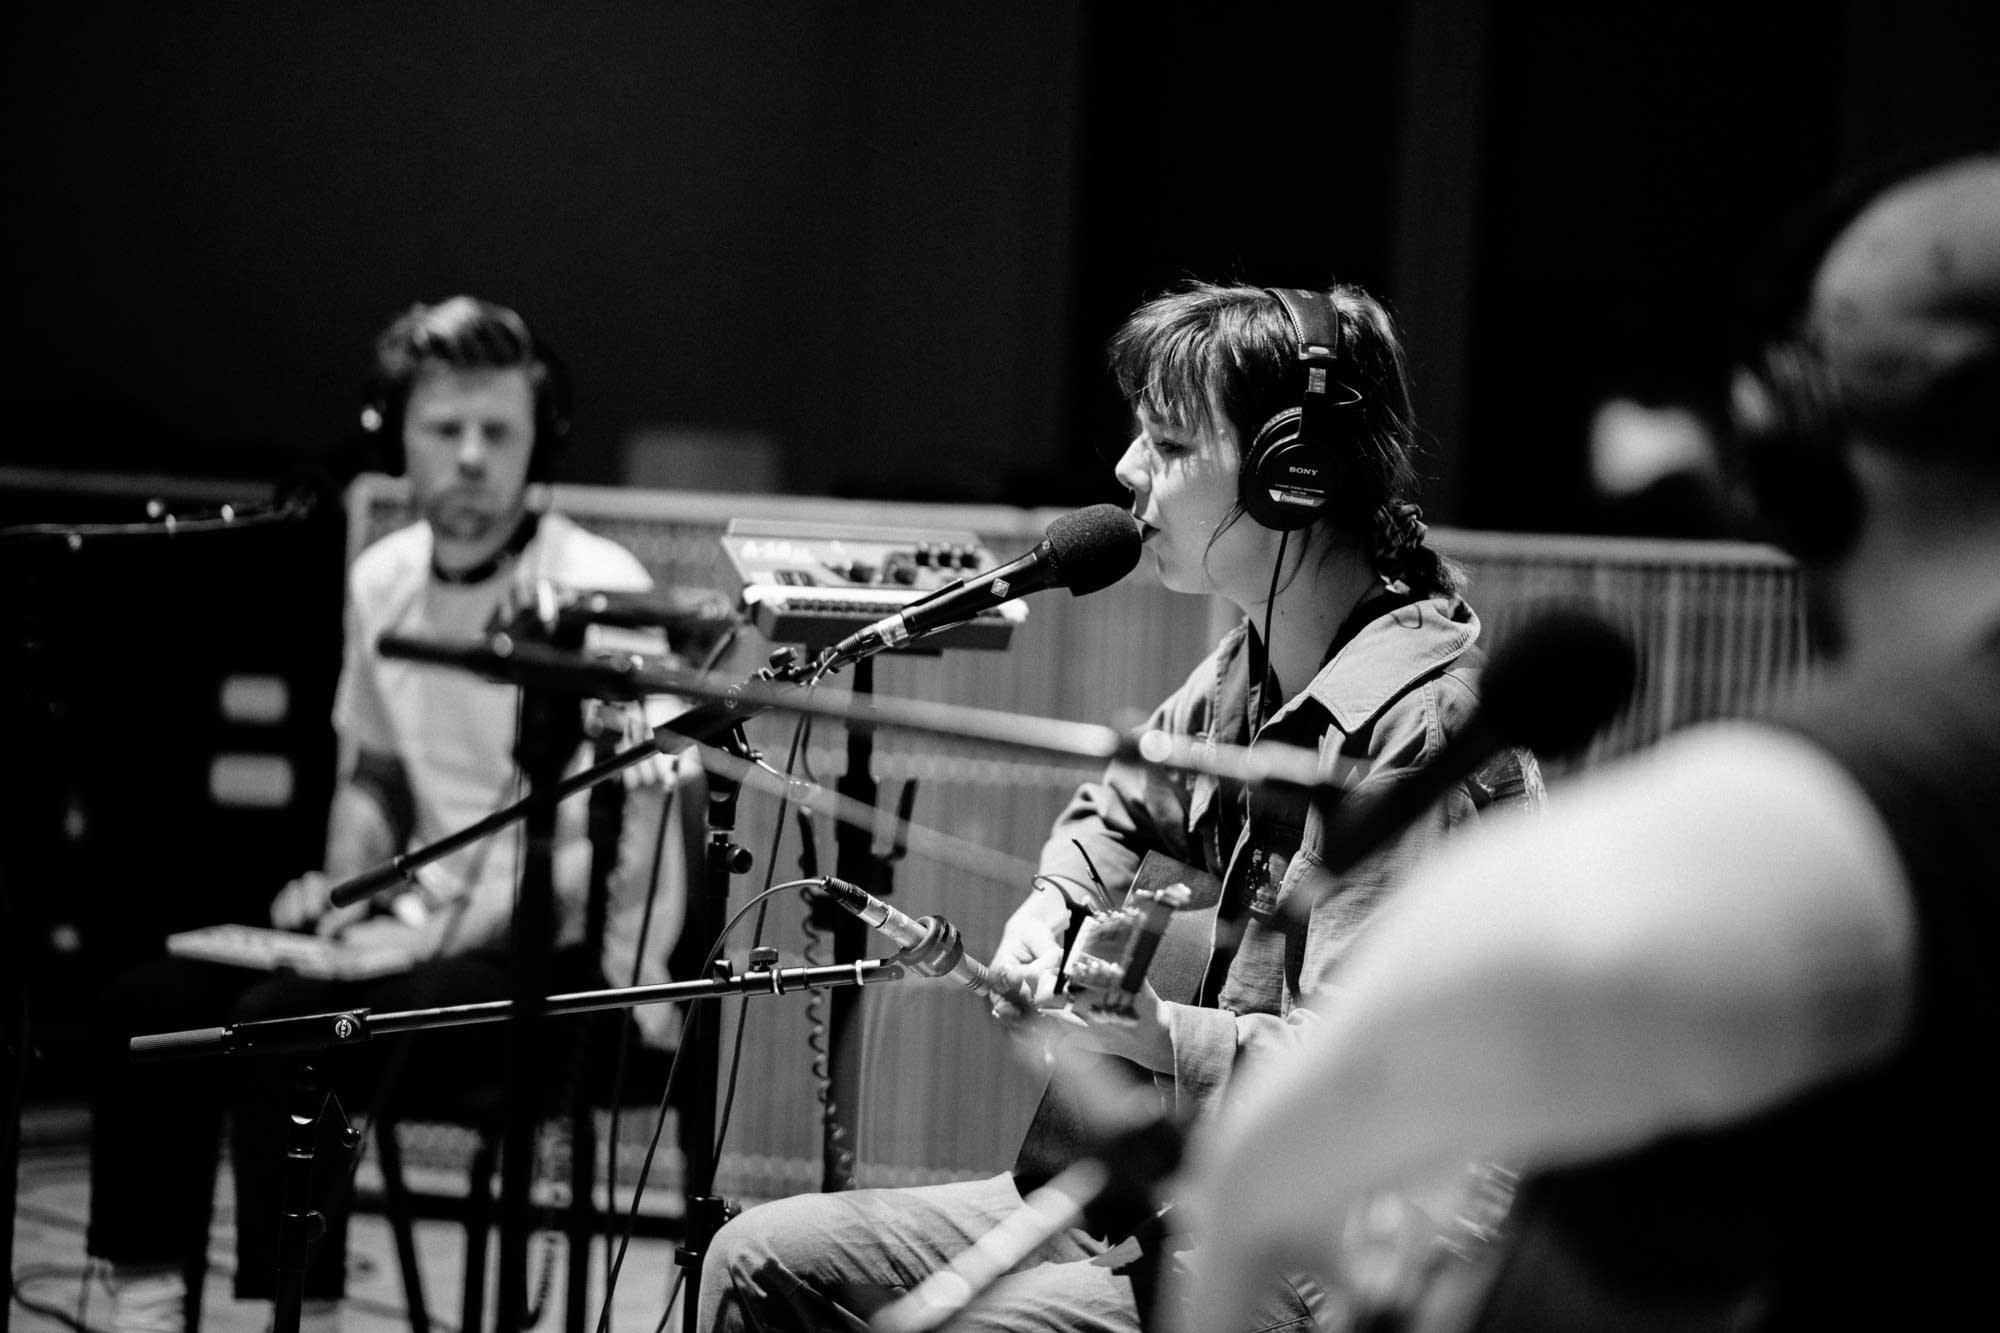 Of Monsters and Men perform in The Current studio